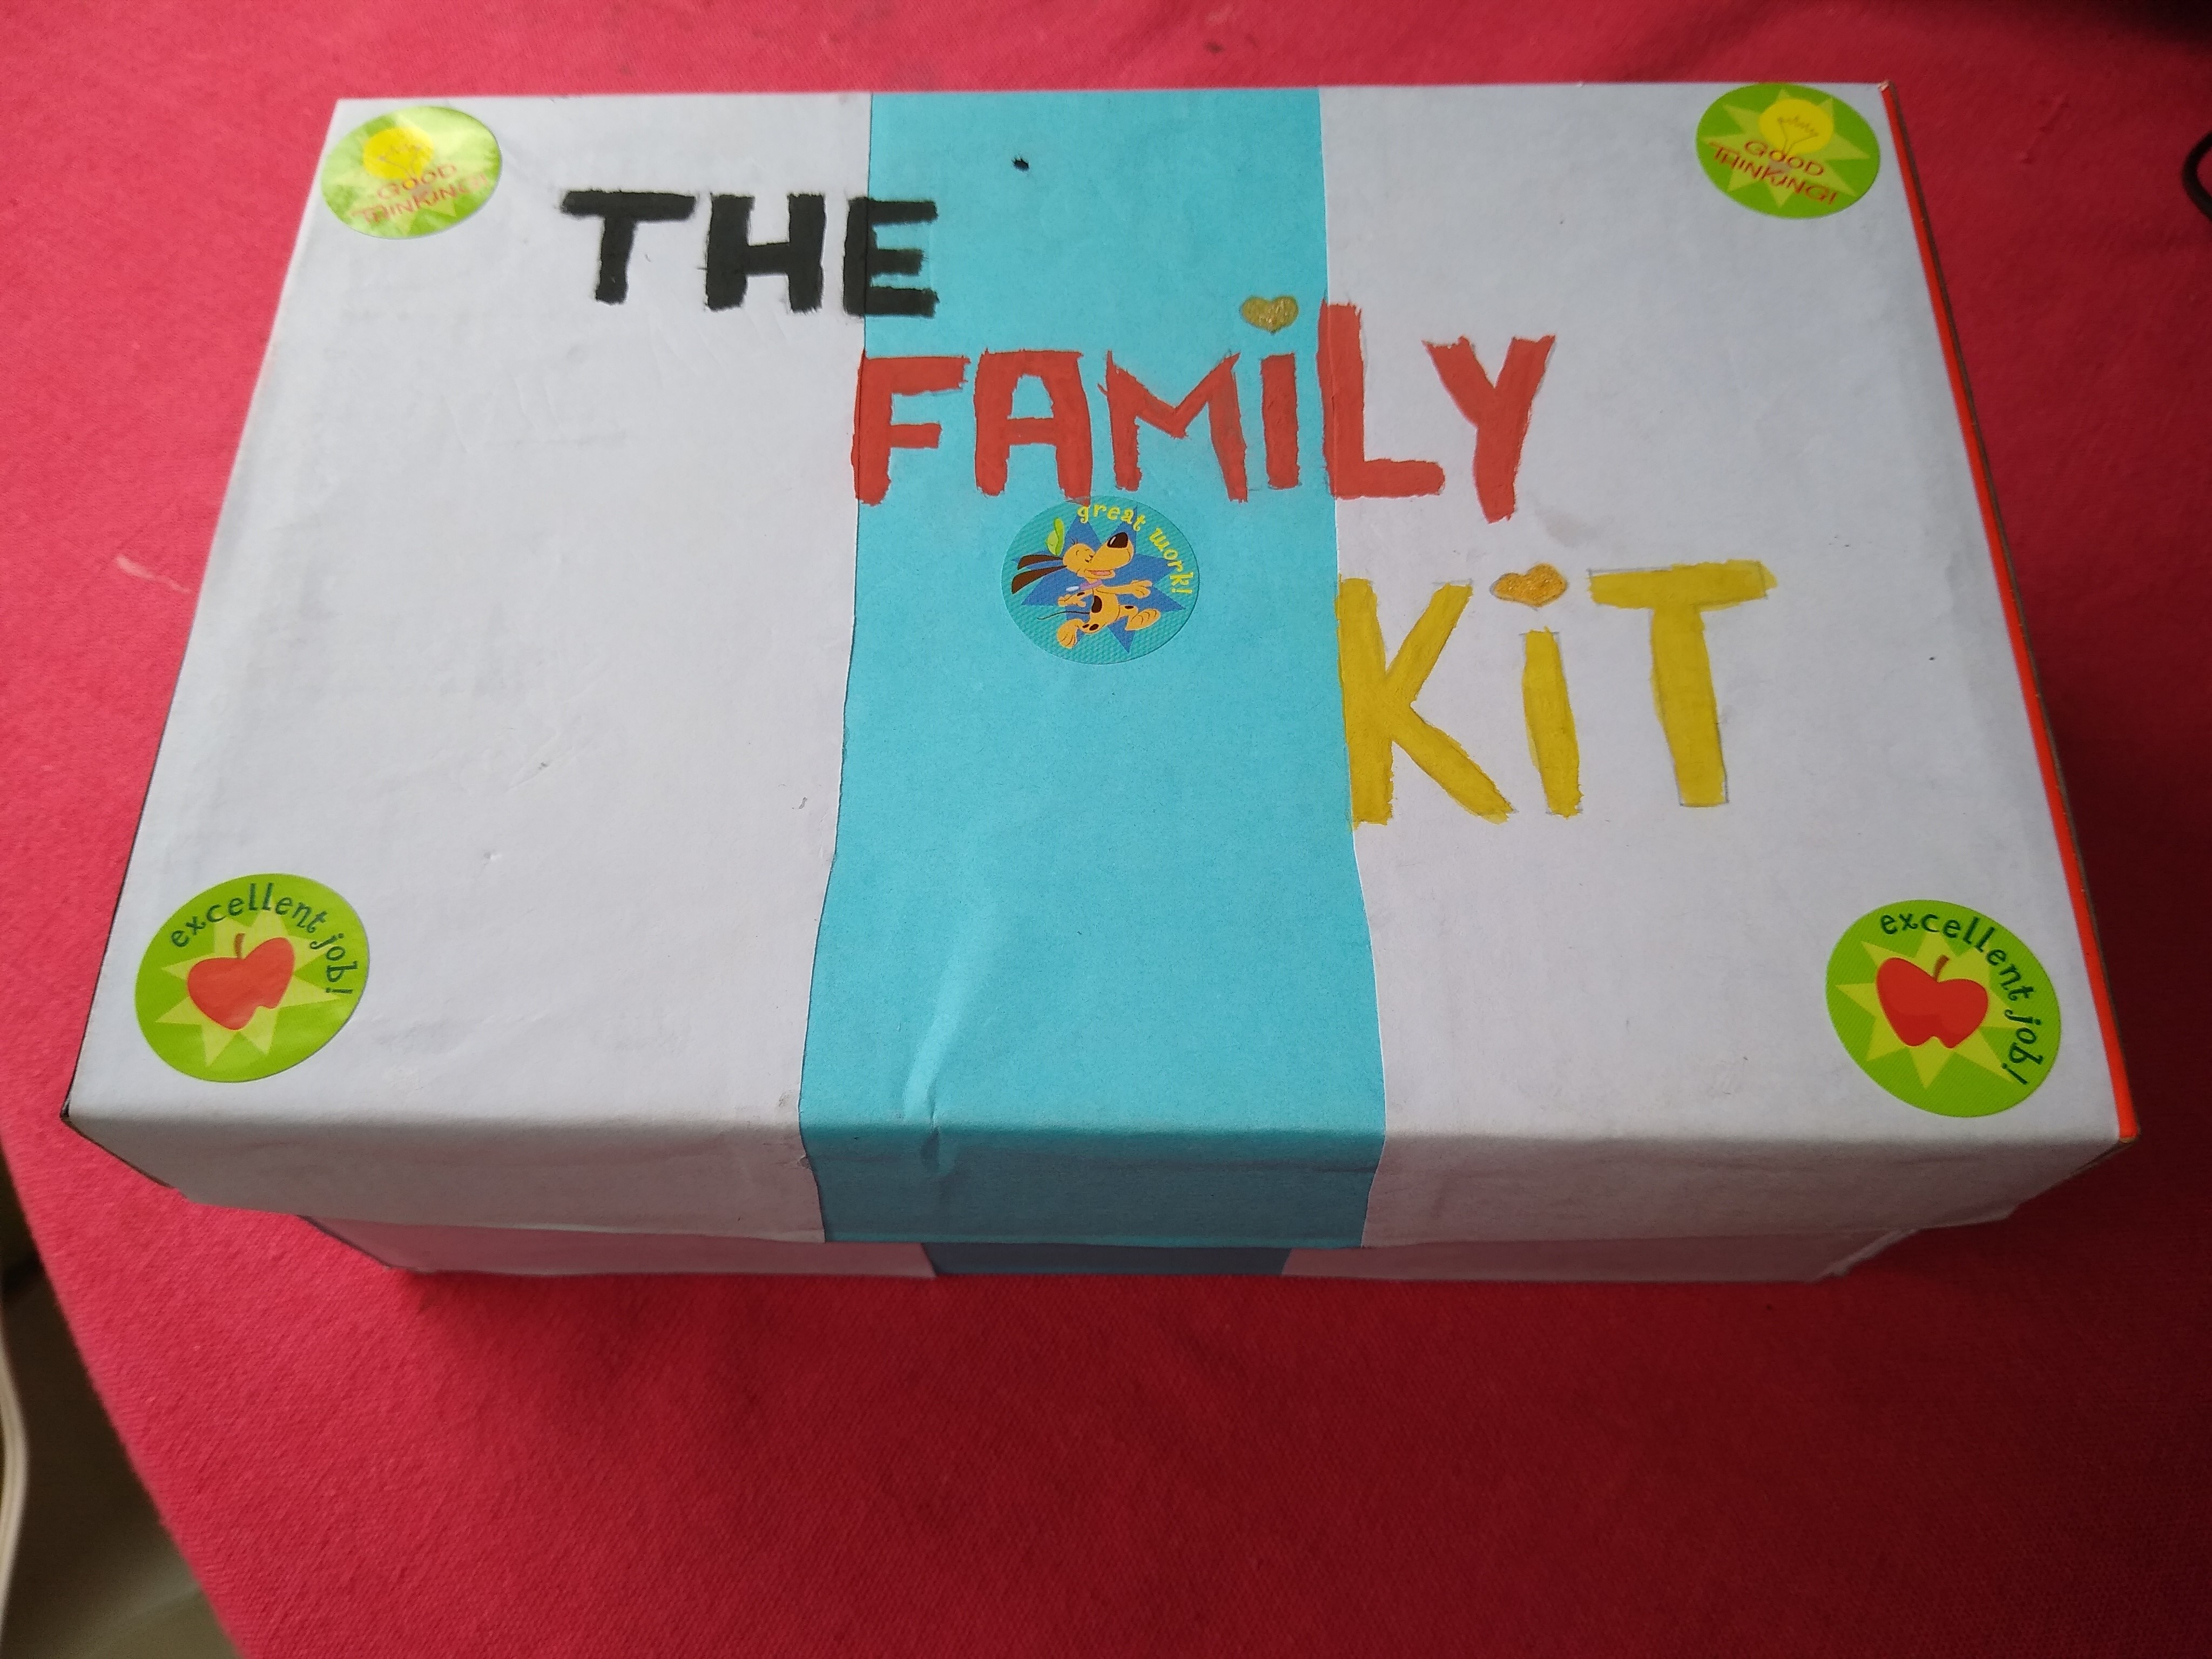 """Box with """"The family kit"""" written on it"""